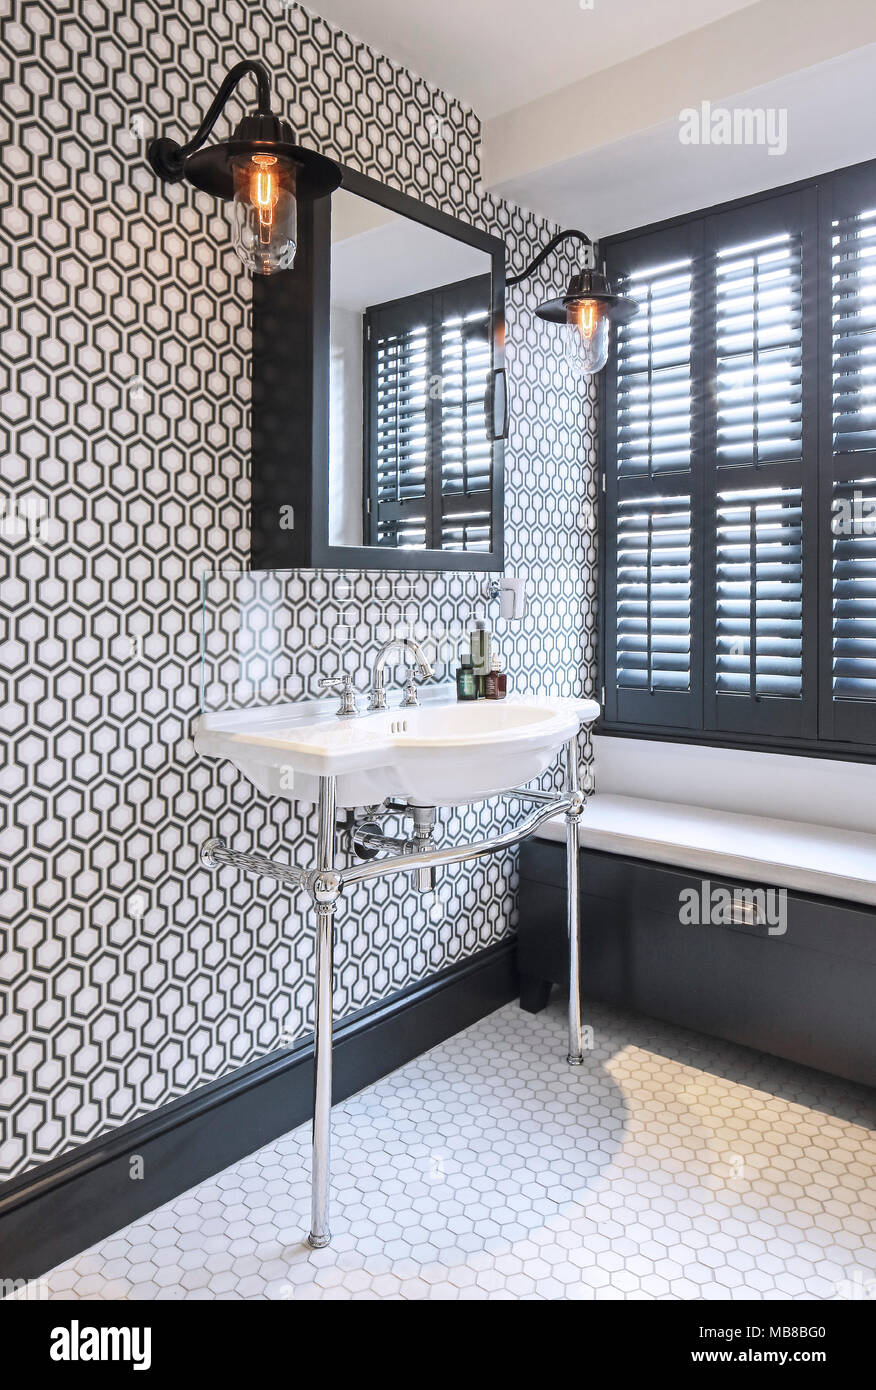 Bathroom Detail With Washbasin And Floor Tiles Private Residence